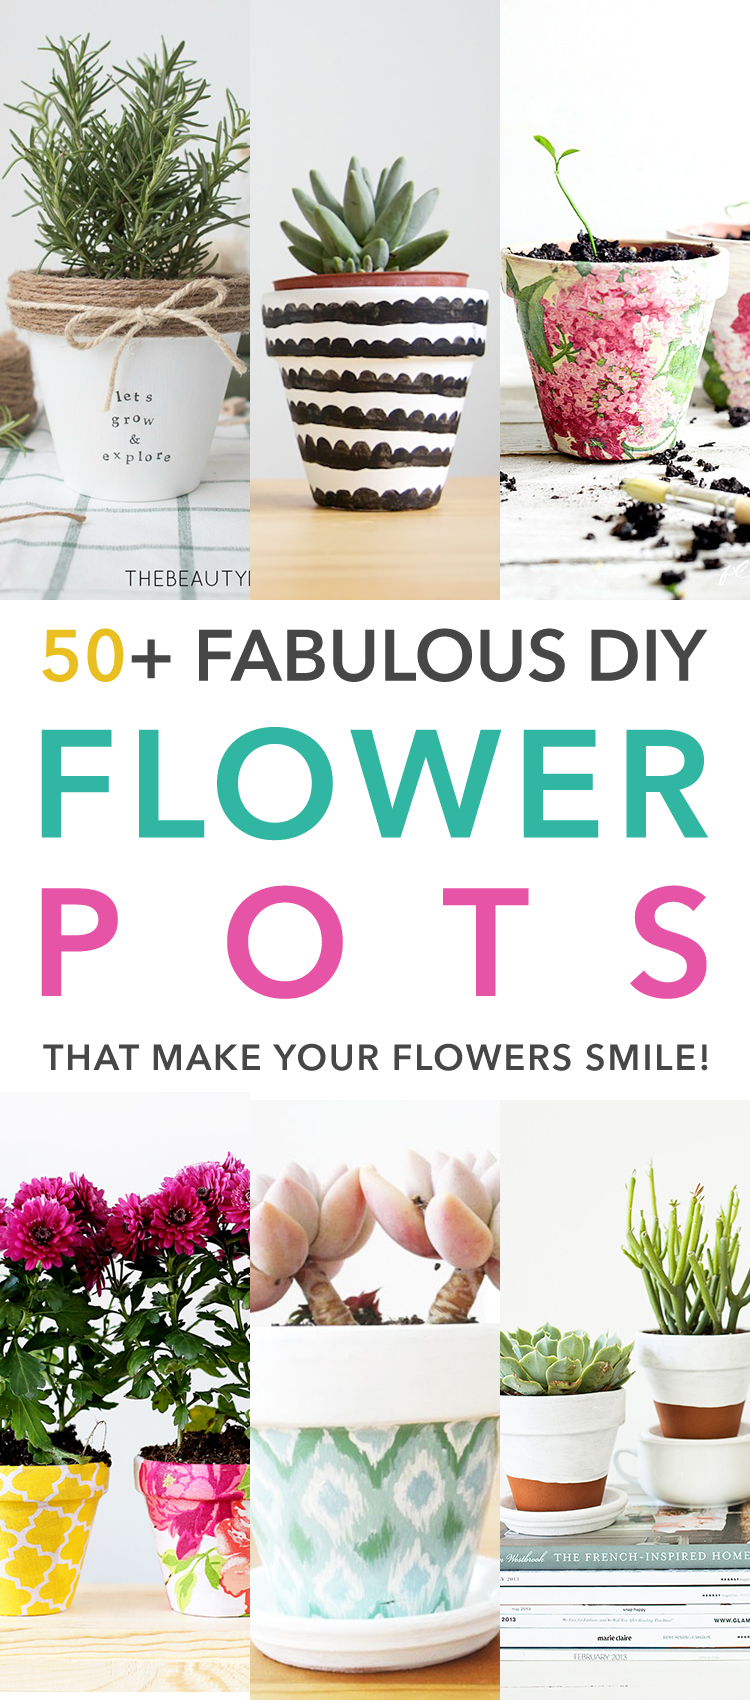 50 Fabulous Diy Flower Pots That Make Your Flowers Smile The